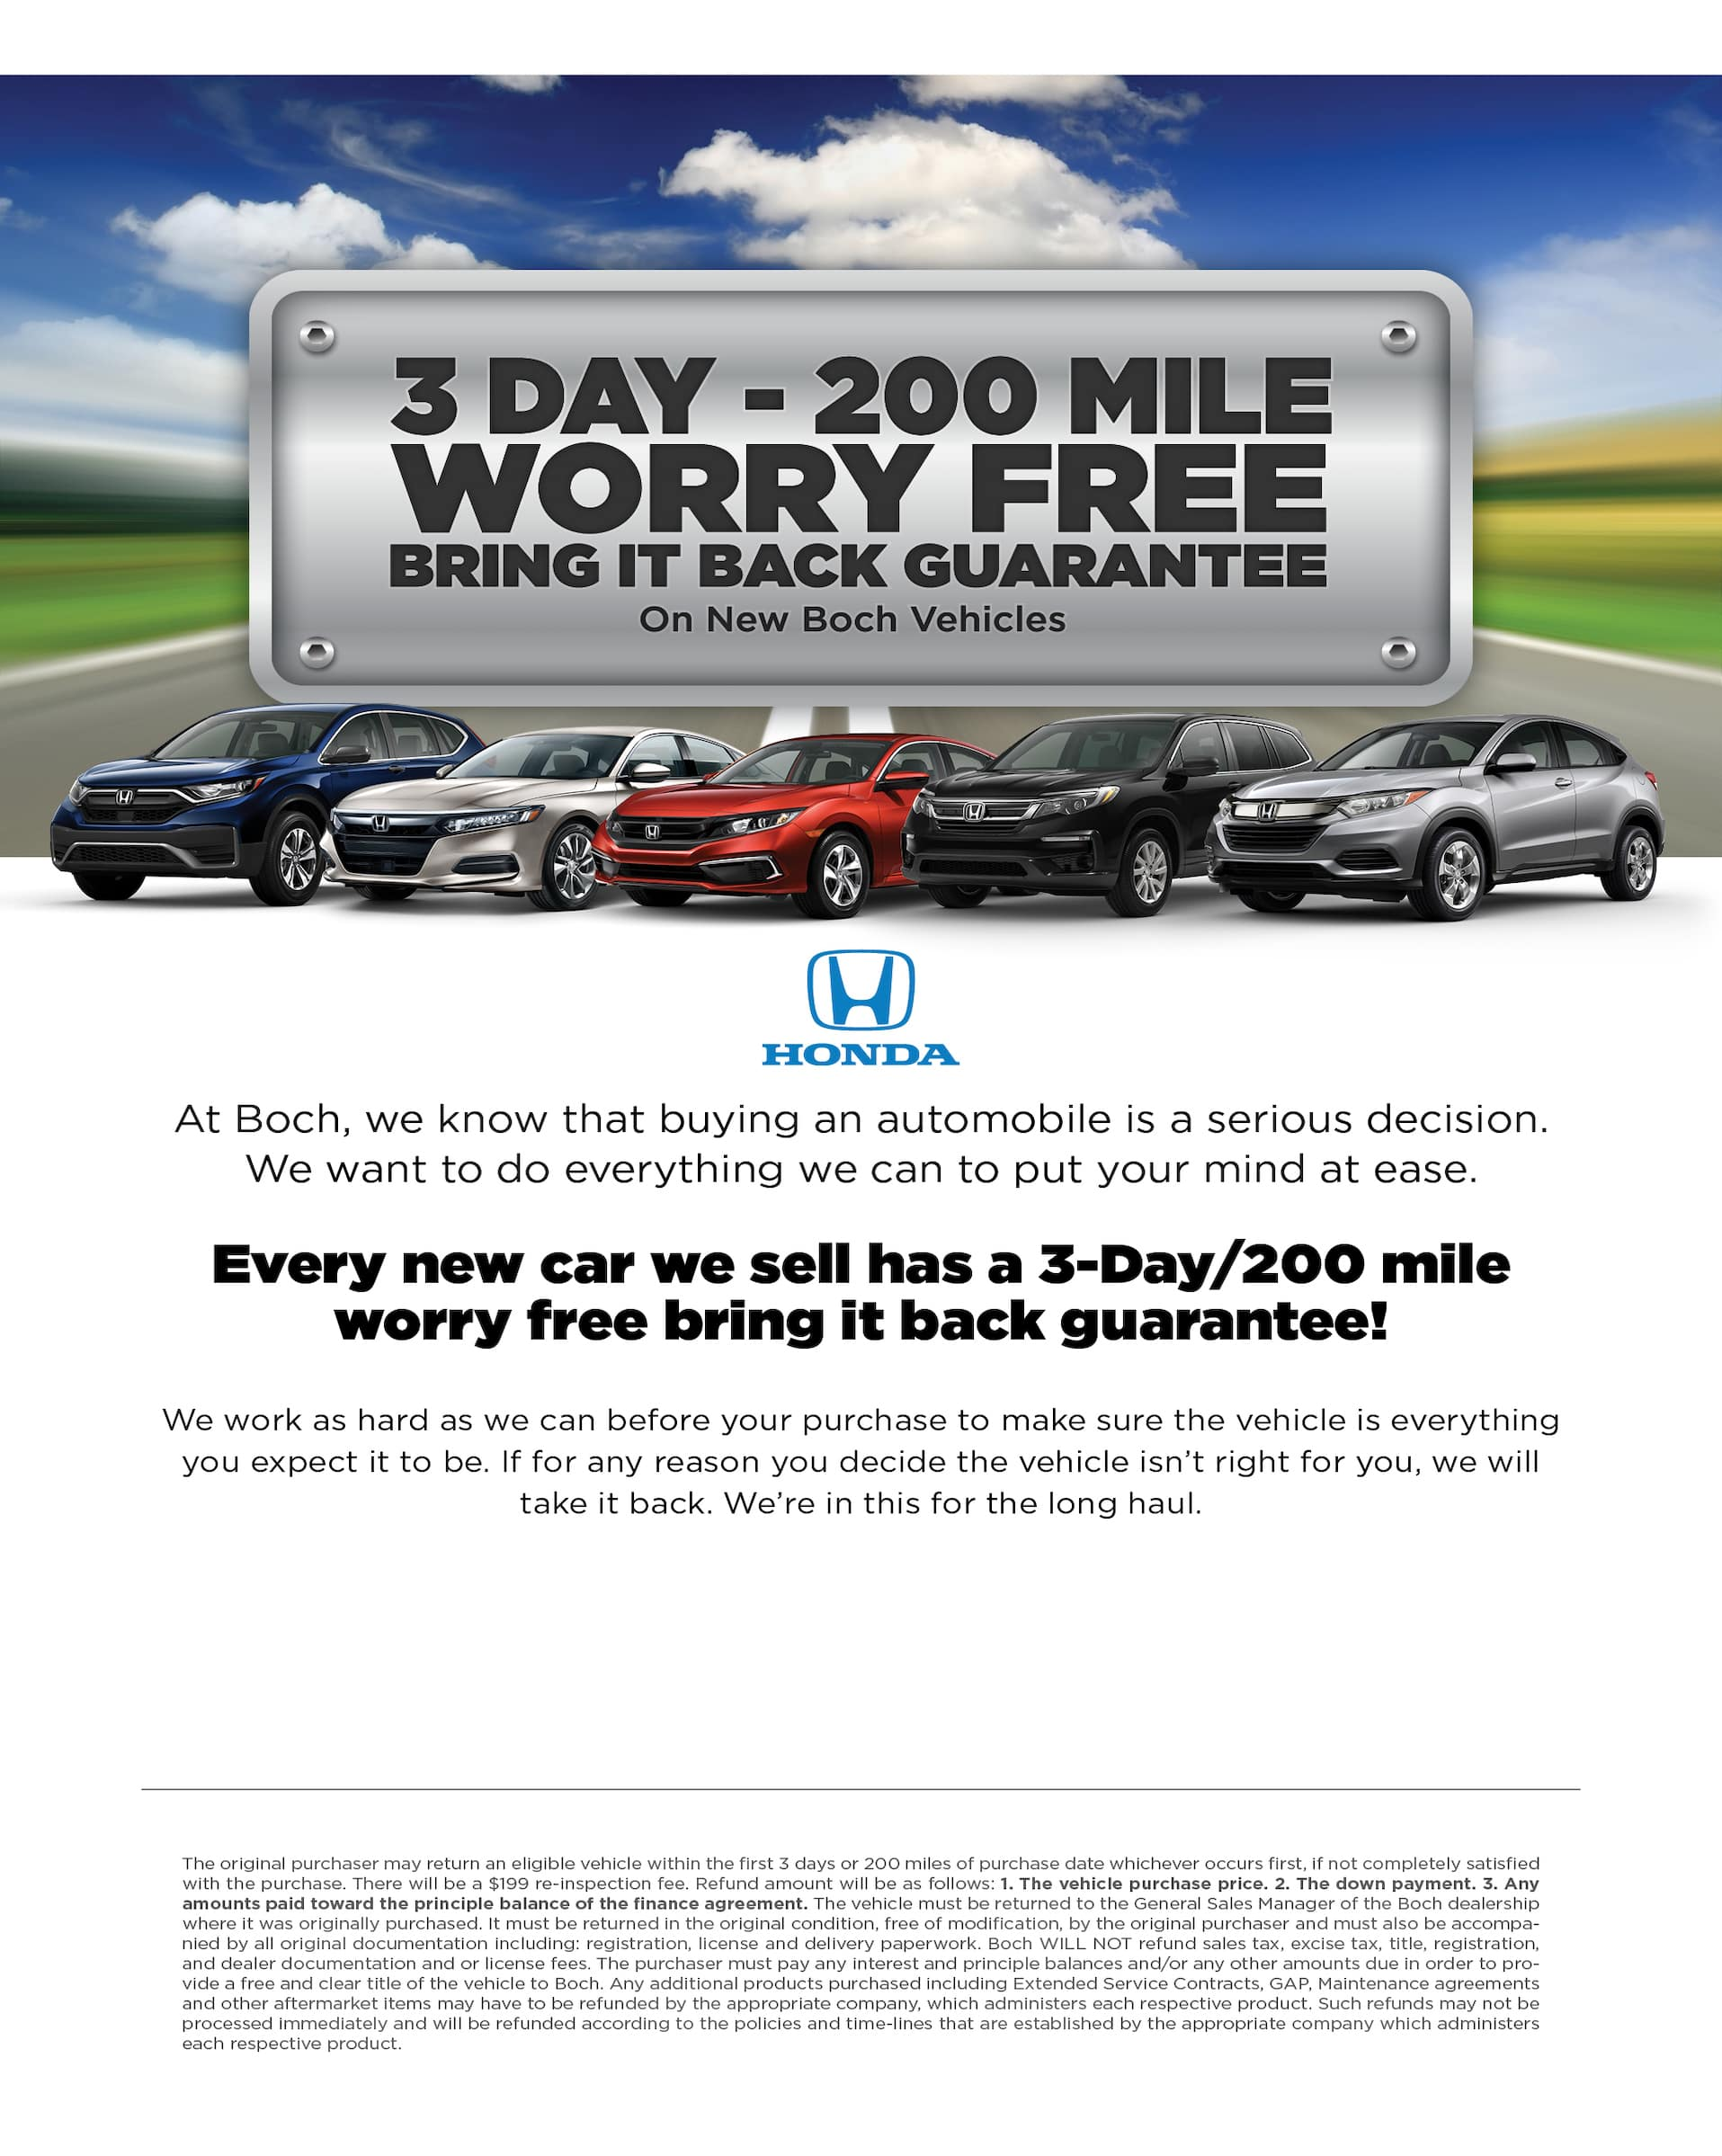 3 Day-200 Mile Worry Free Bring It Back Guarantee